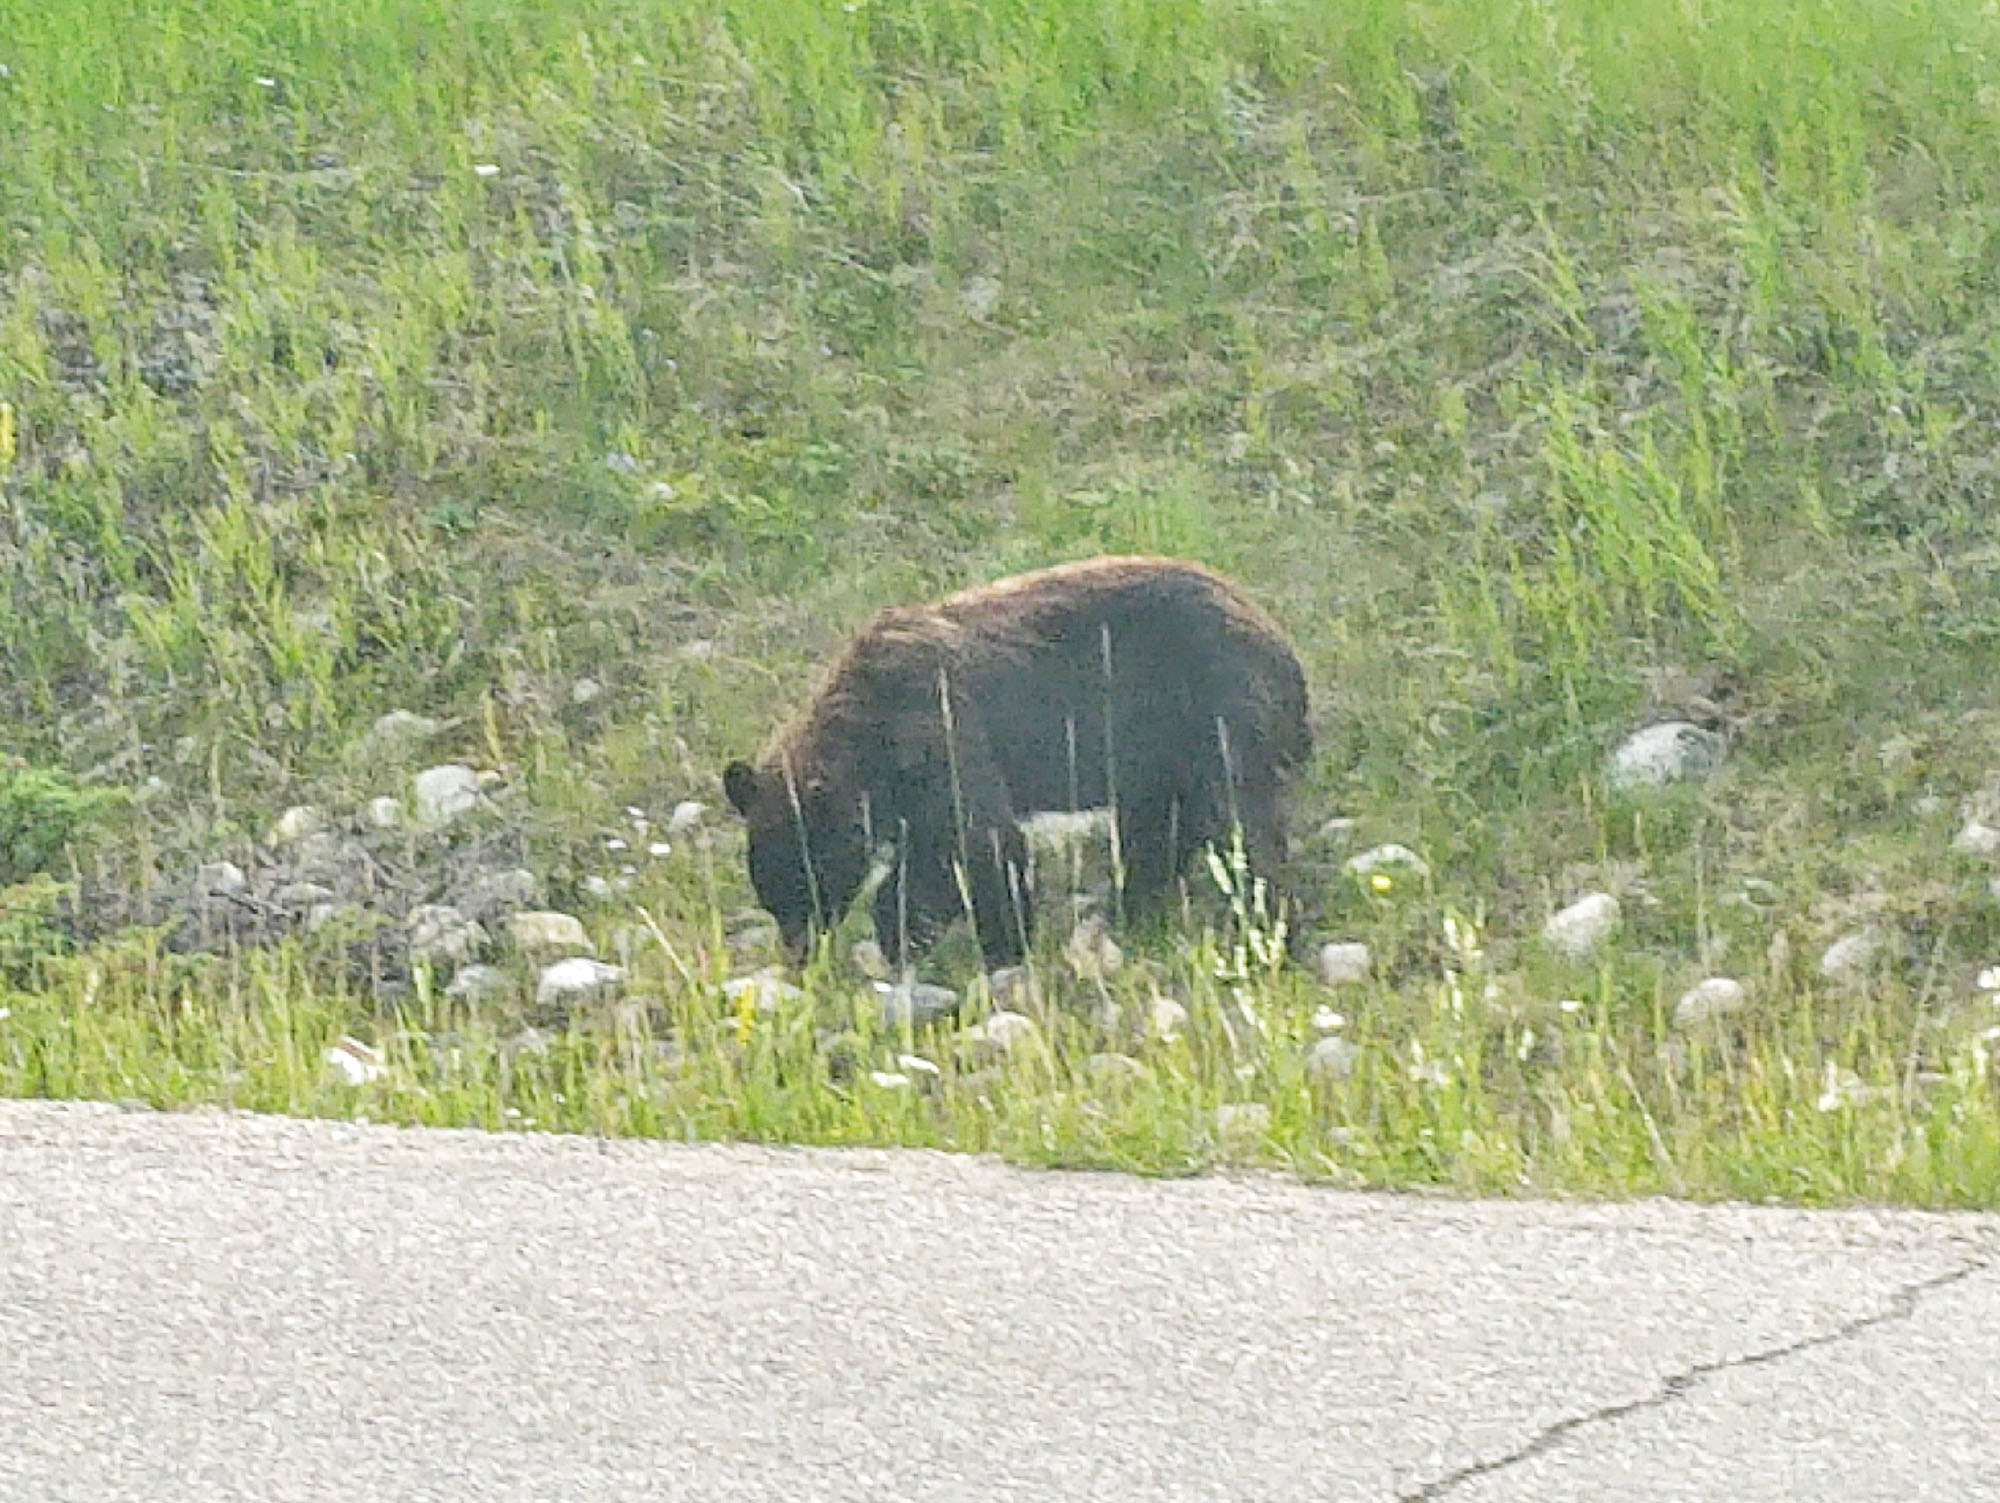 A grizzly feeds next to the Icefields Parkway near Jasper, where sightings are common. (Craig Davis/craigslegztravels.com)